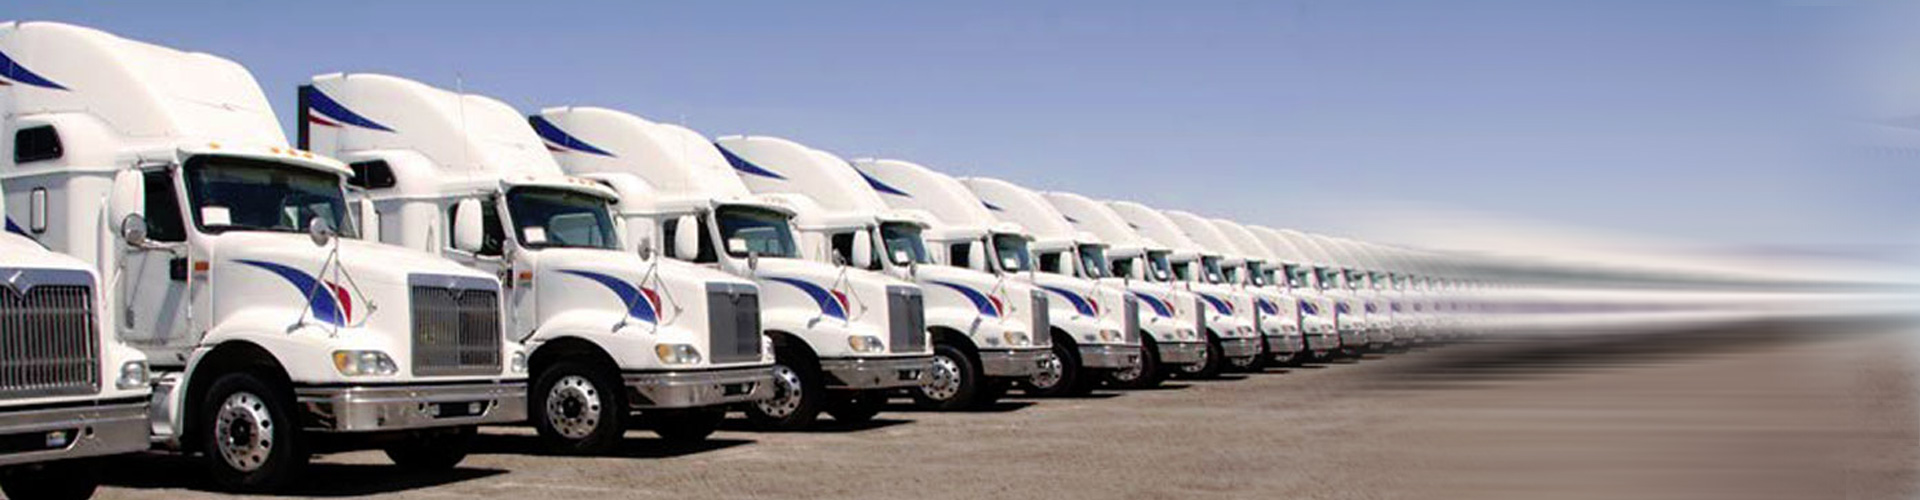 banner_asset_fleet_management-2